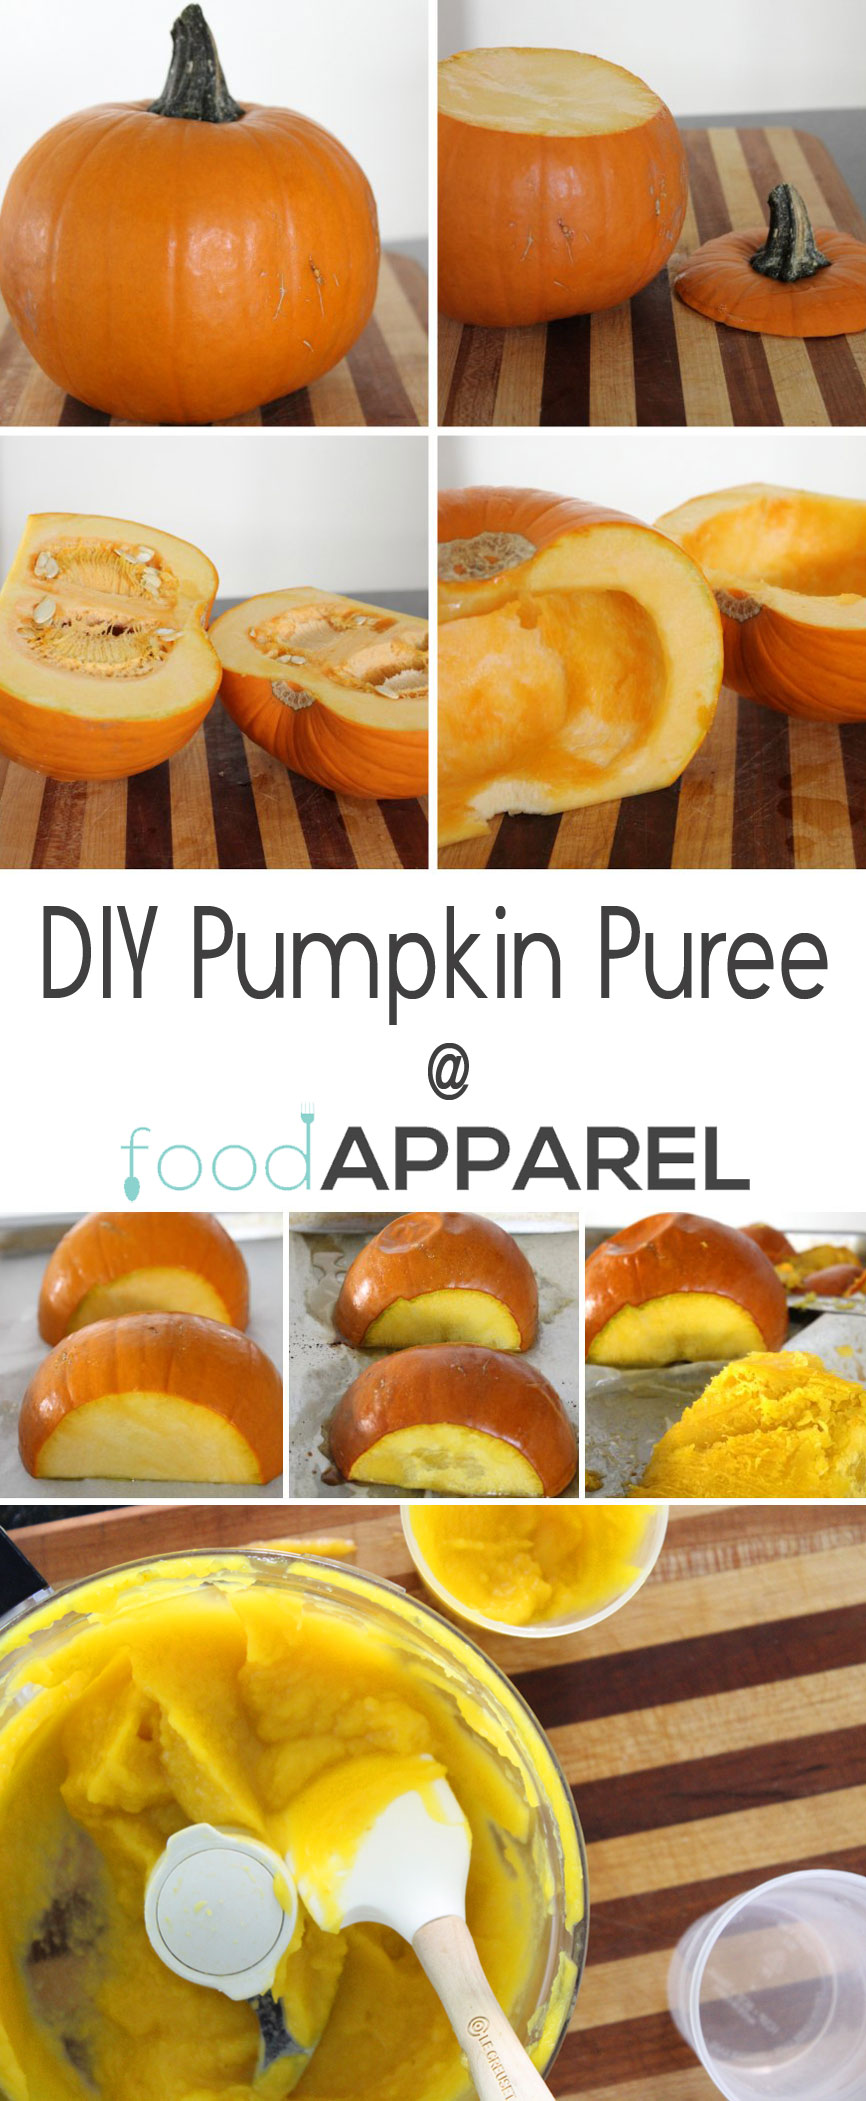 DIY Pumpkin Puree - for all your pumpkiny baked goods! #howto @foodapparel